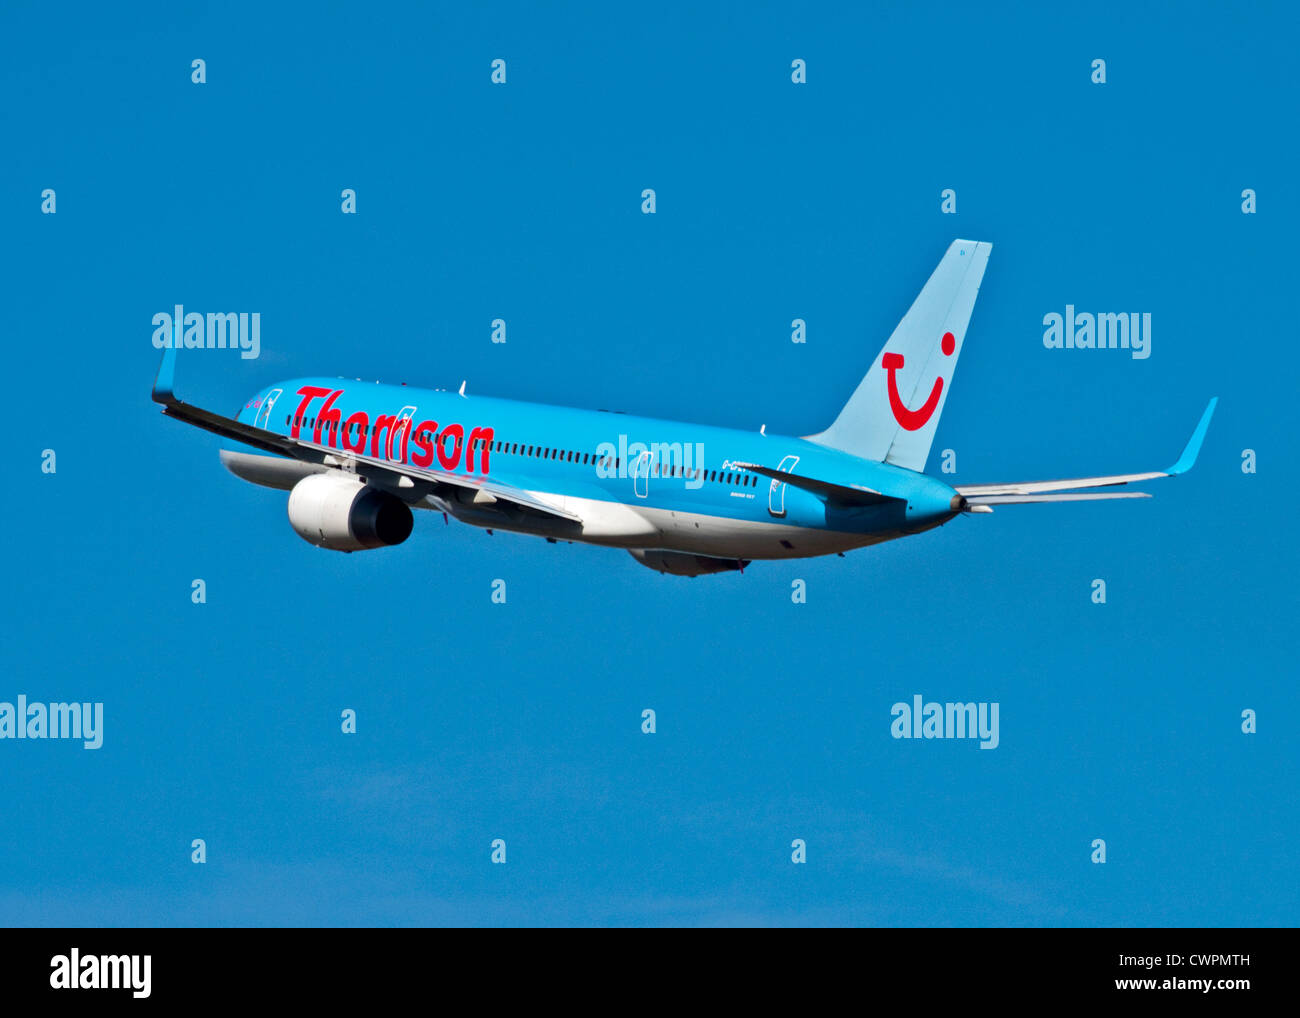 Thomson Boeing 757 Aircraft, Gatwick Airport, Sussex, England - Stock Image